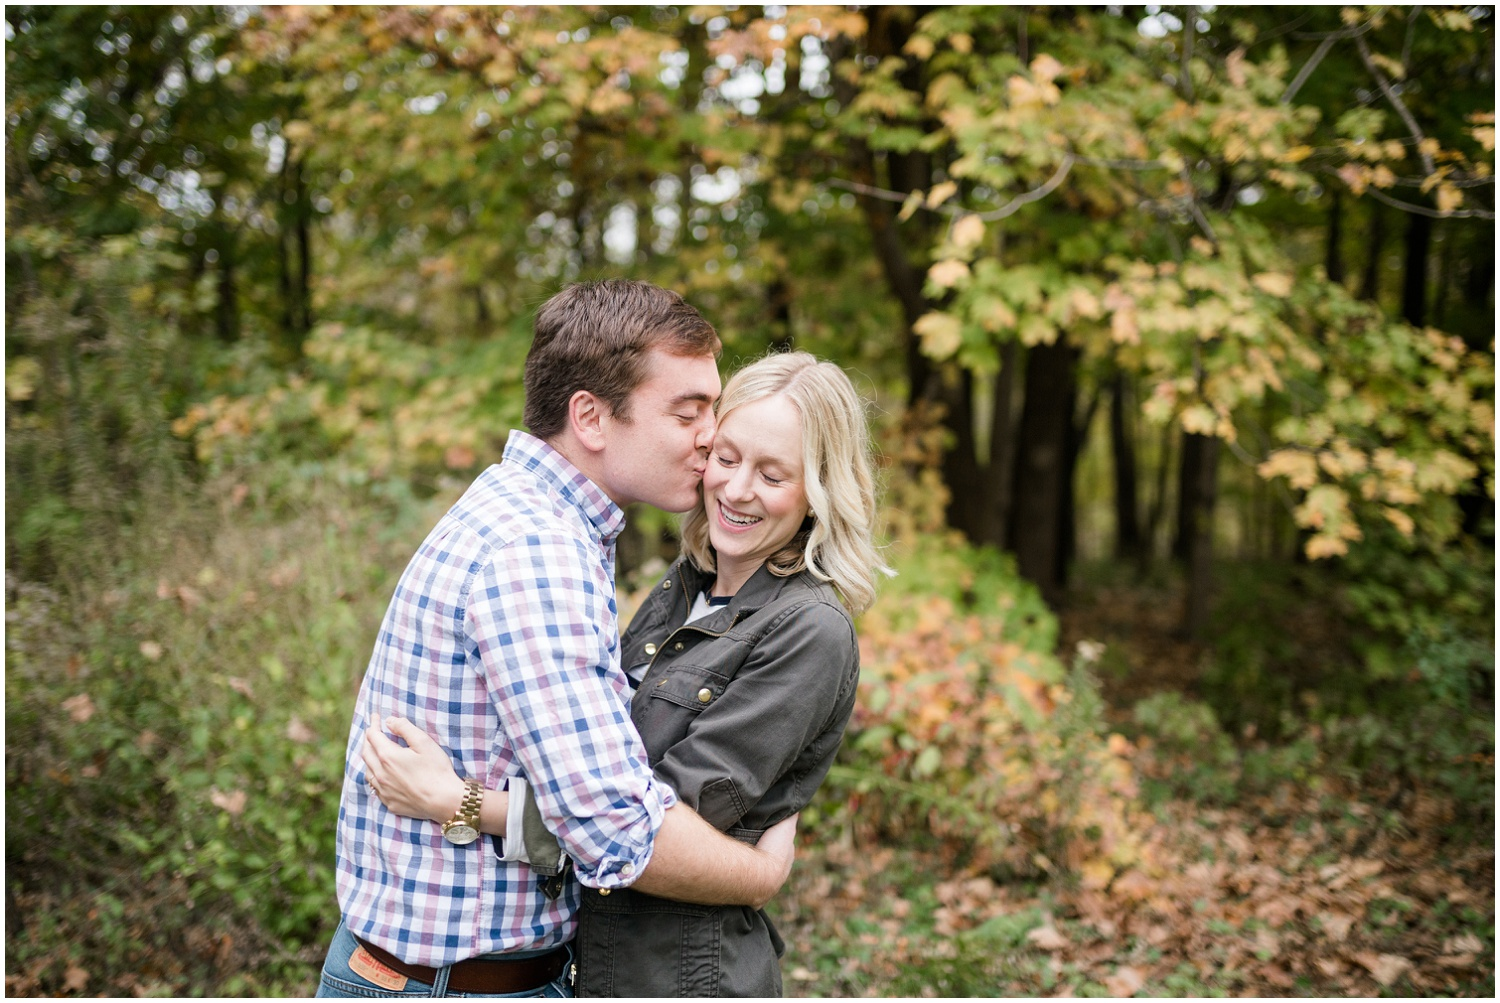 leah-reese-cherokee-park-engagement-session_0258.jpg